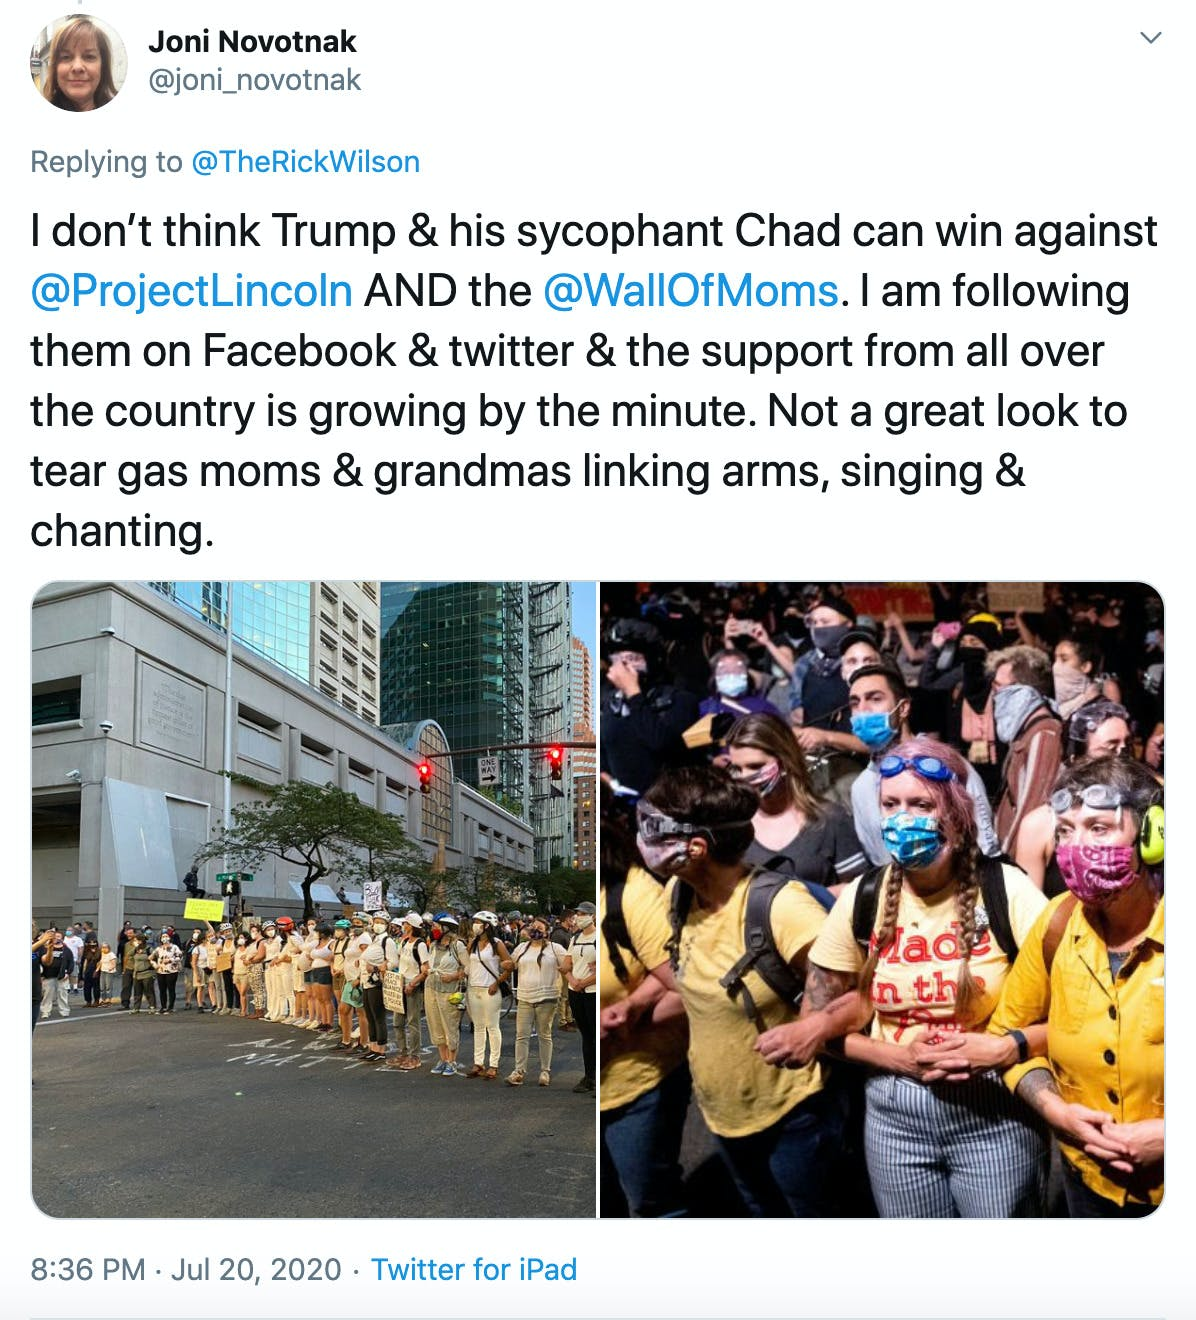 """""""I don't think Trump & his sycophant Chad can win against  @ProjectLincoln  AND the  @WallOfMoms . I am following them on Facebook & twitter & the support from all over the country is growing by the minute. Not a great look to tear gas moms & grandmas linking arms, singing & chanting."""" two photographs of the yellow clad protesters"""